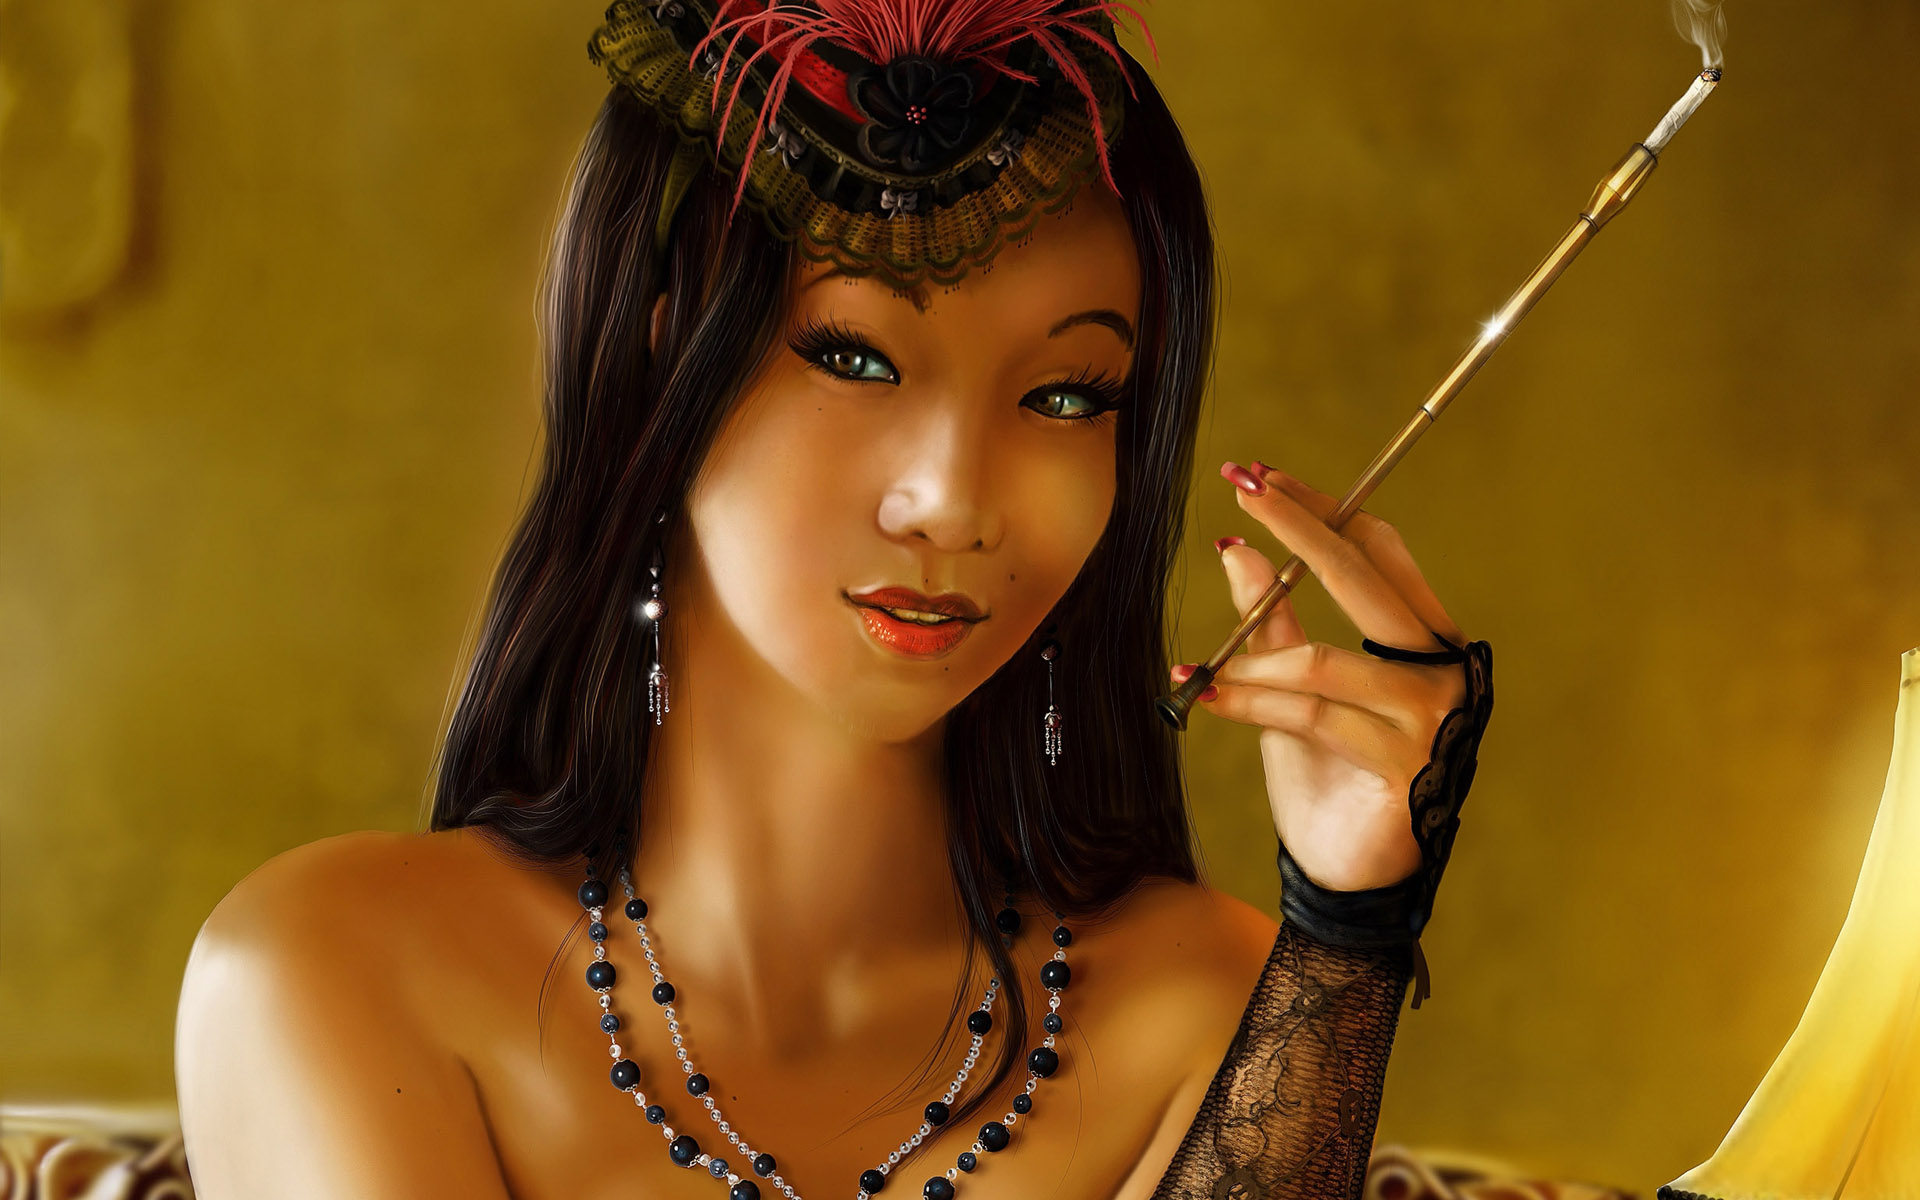 Oriental Beauty wallpapers and images   wallpapers pictures photos 1920x1200